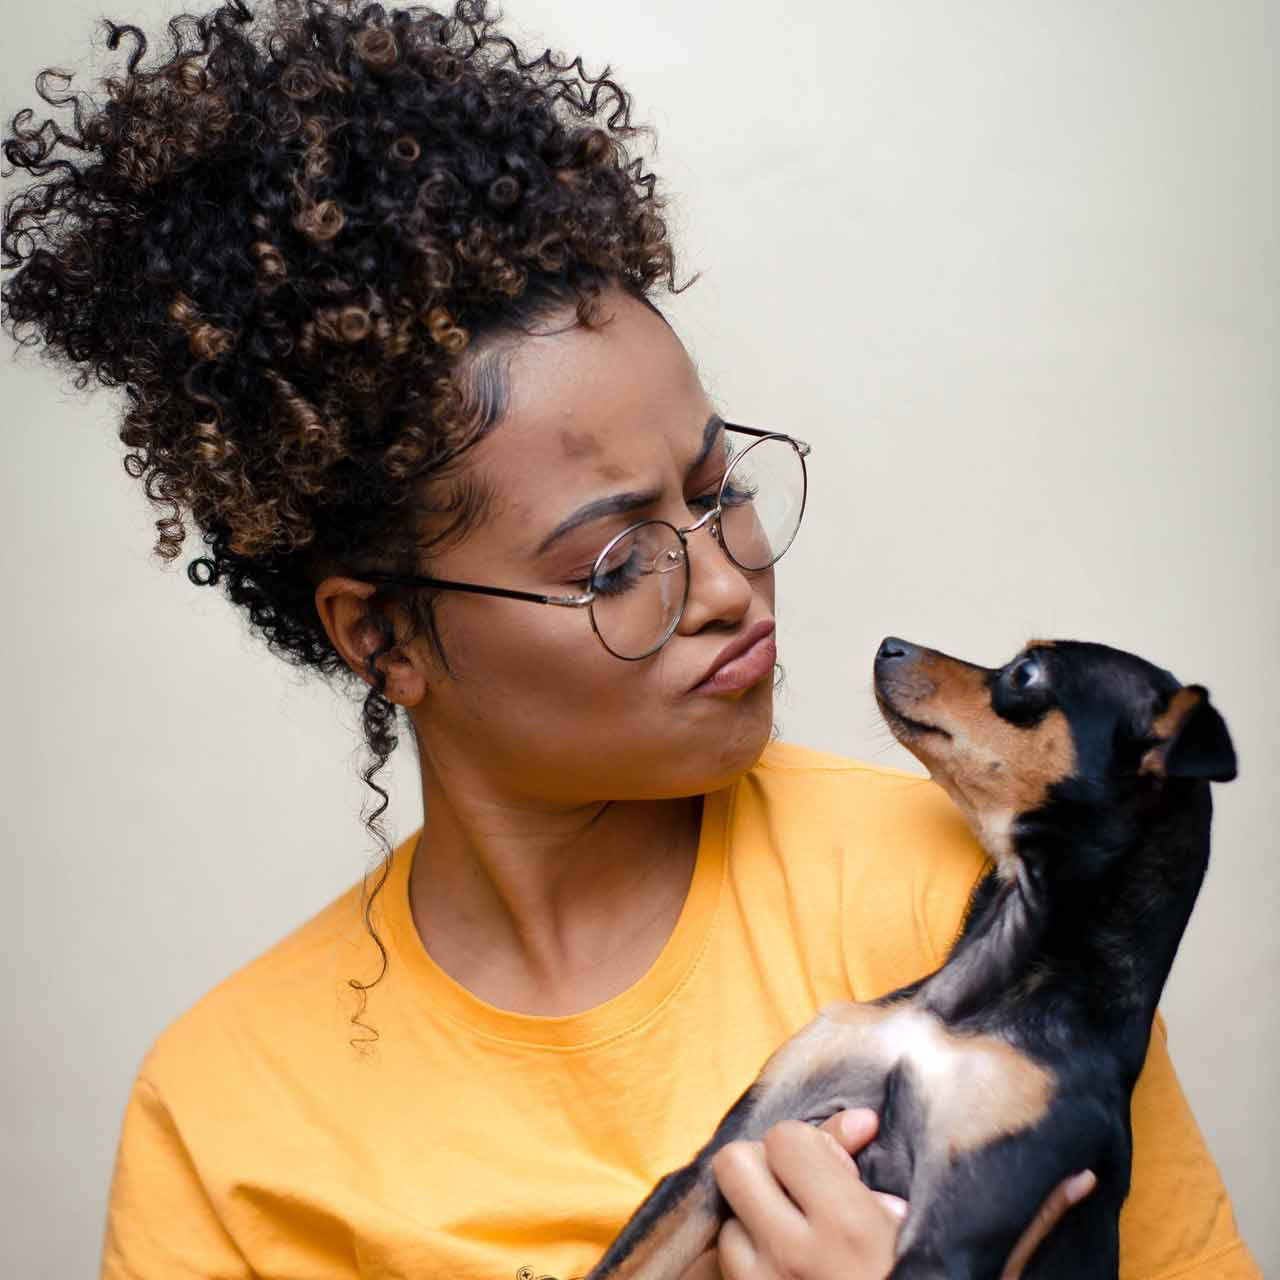 woman-holding-short-coated-black-and-brown-puppy-3190736